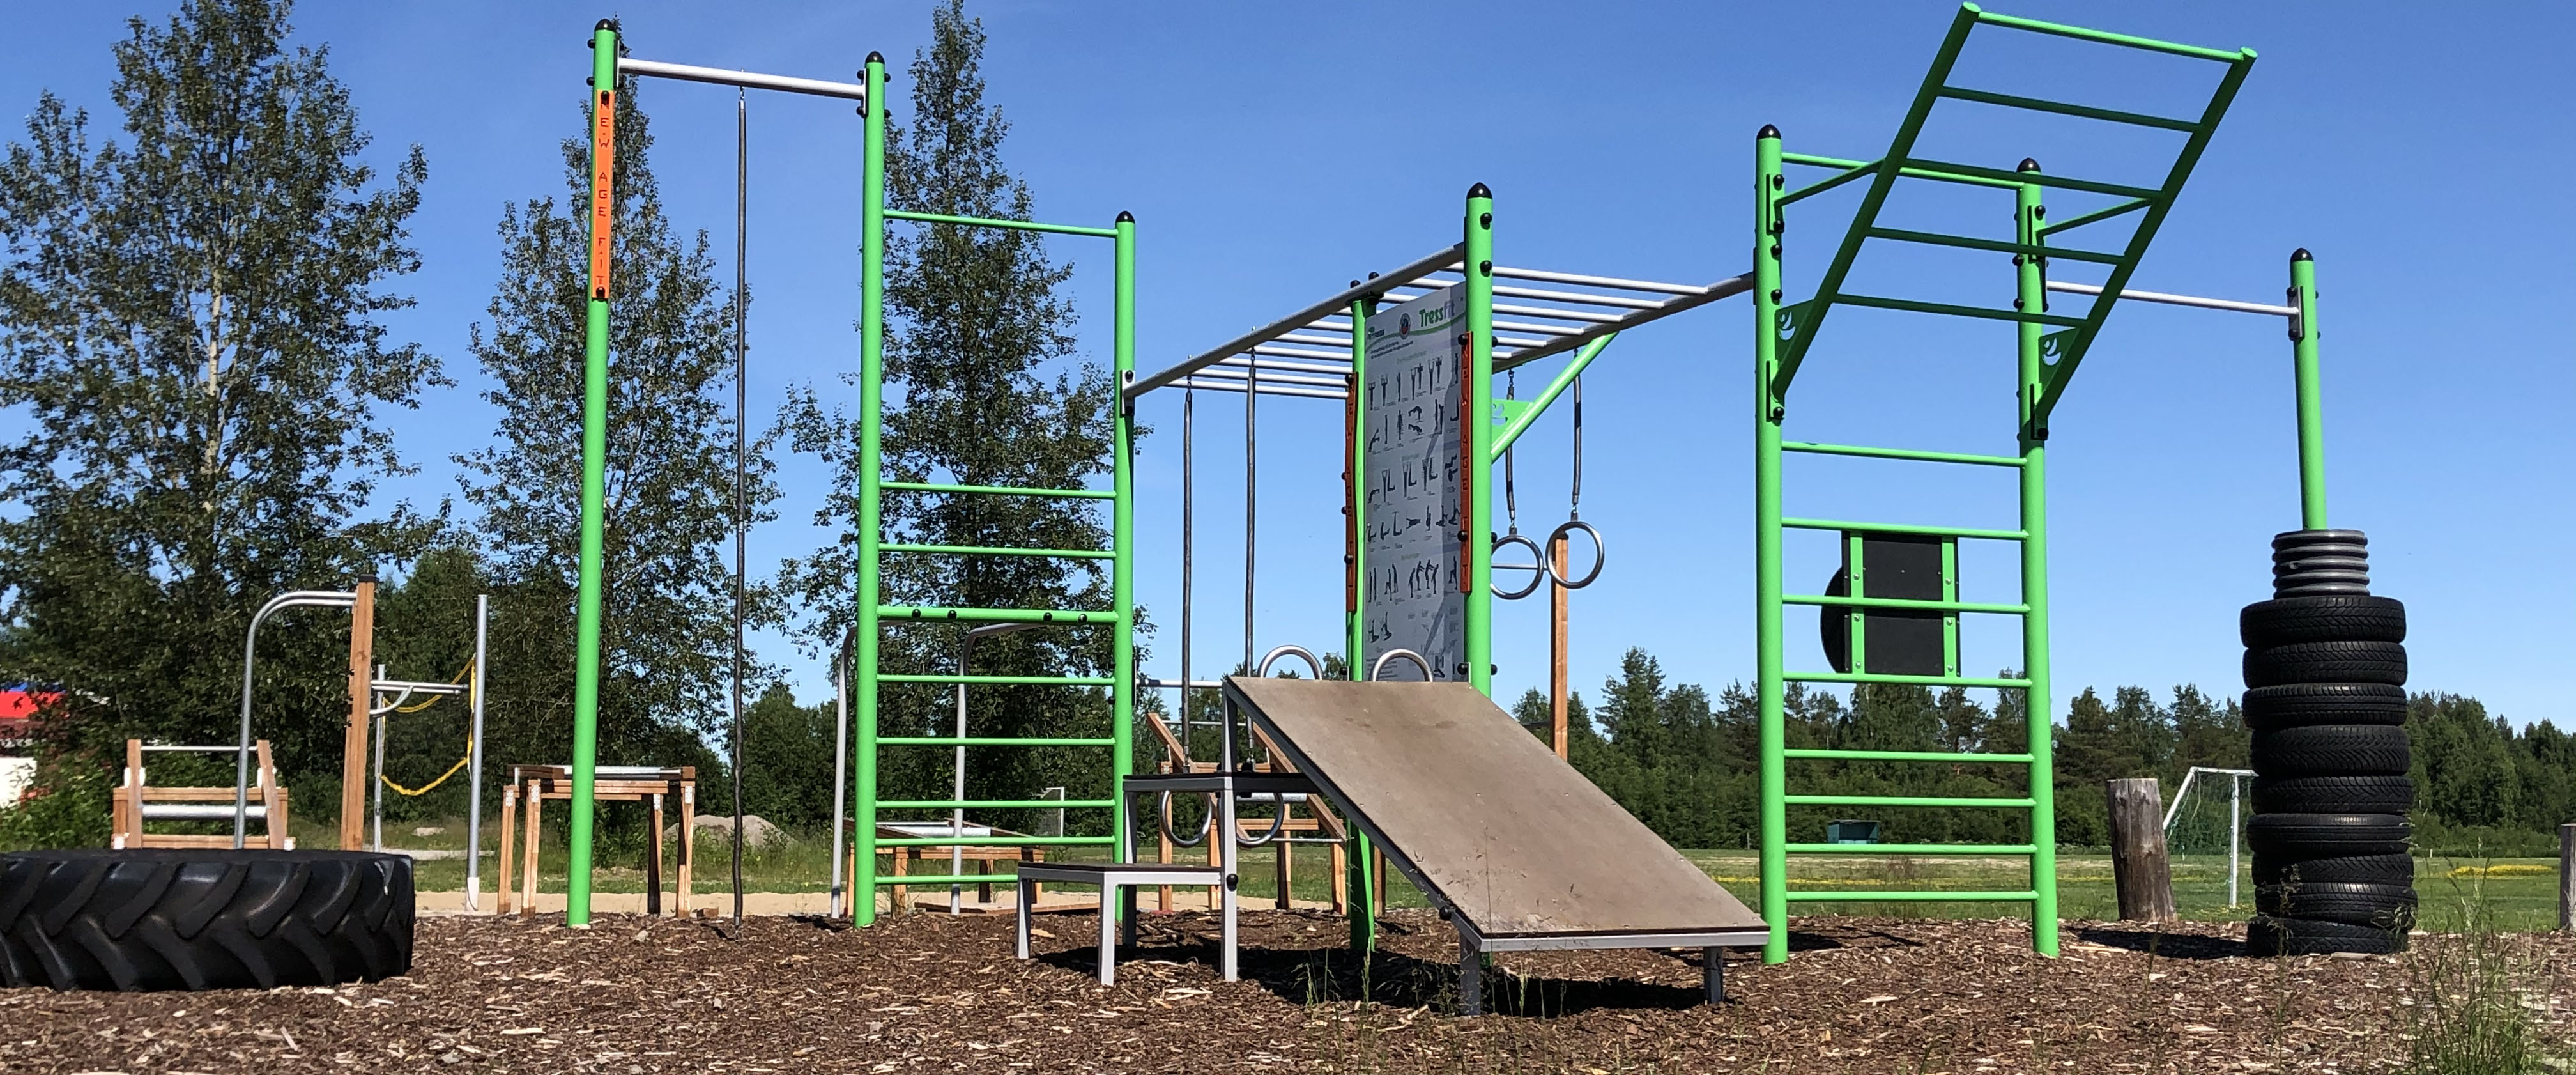 Svensbyns Multi arena outdoor gym